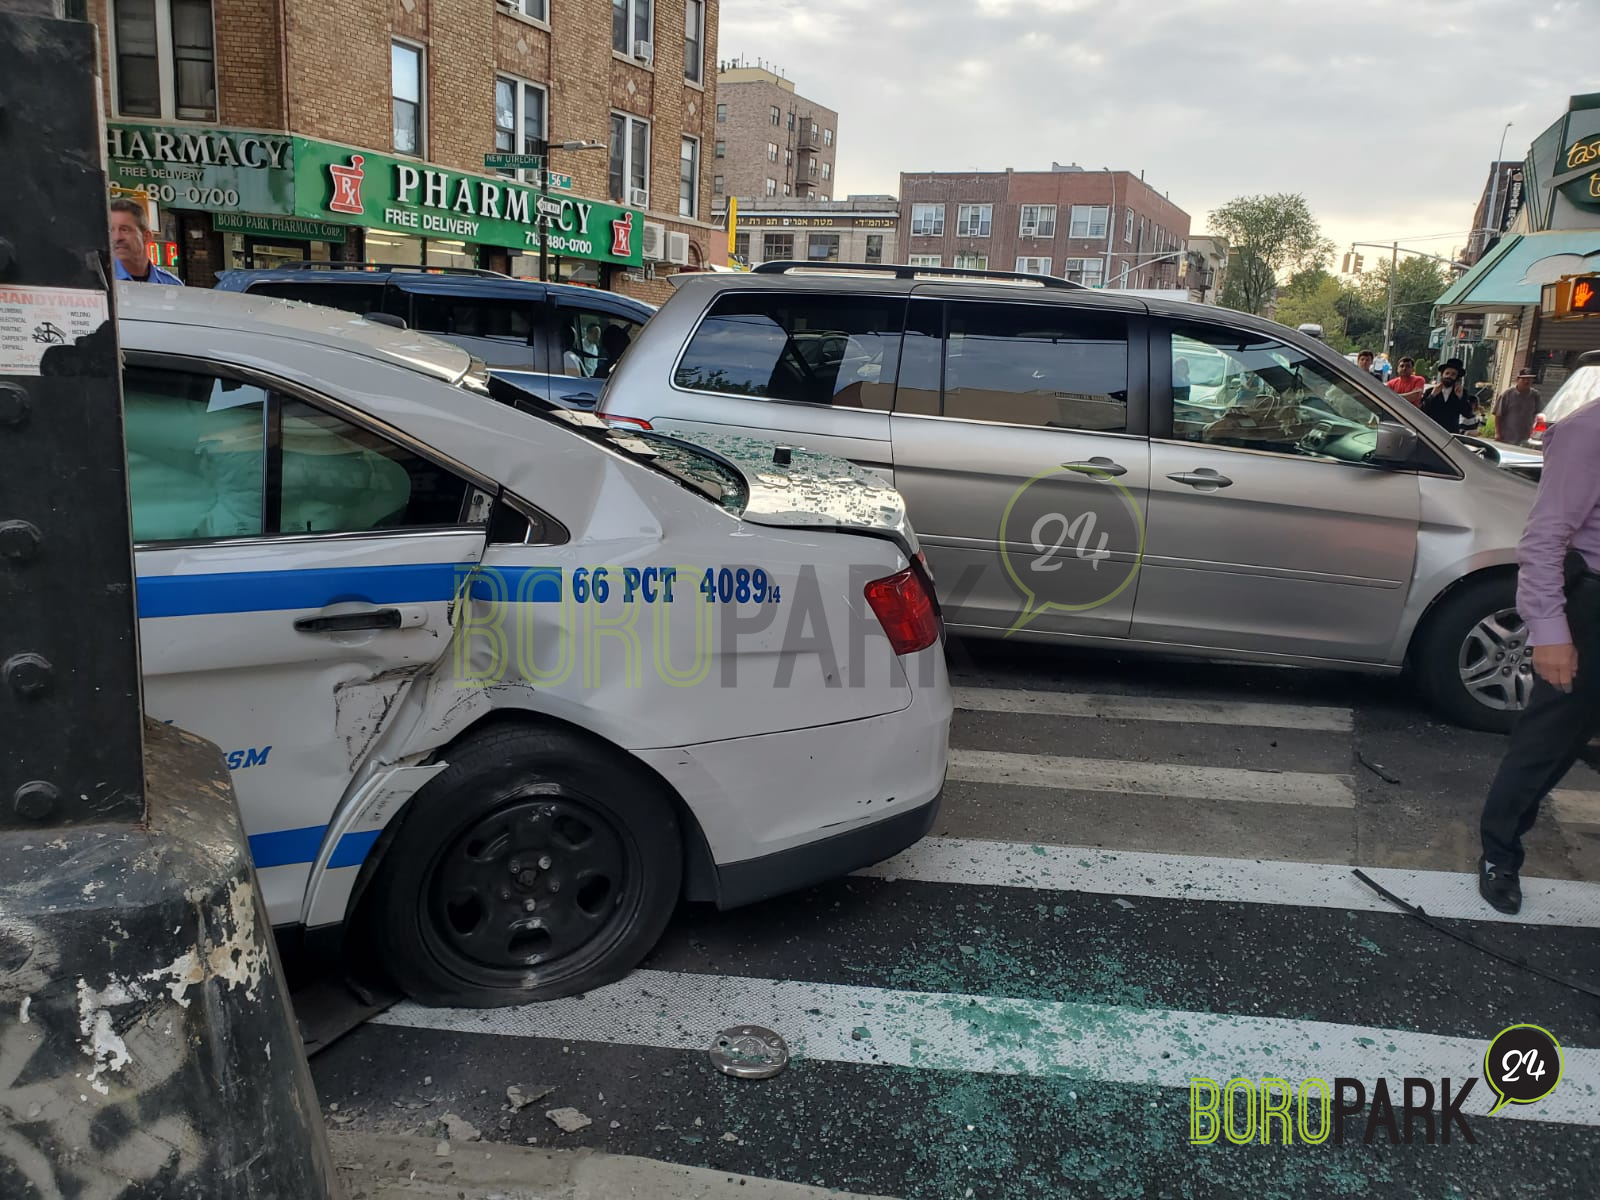 NYPD Officer Injured in Car Accident on New Utrecht Ave